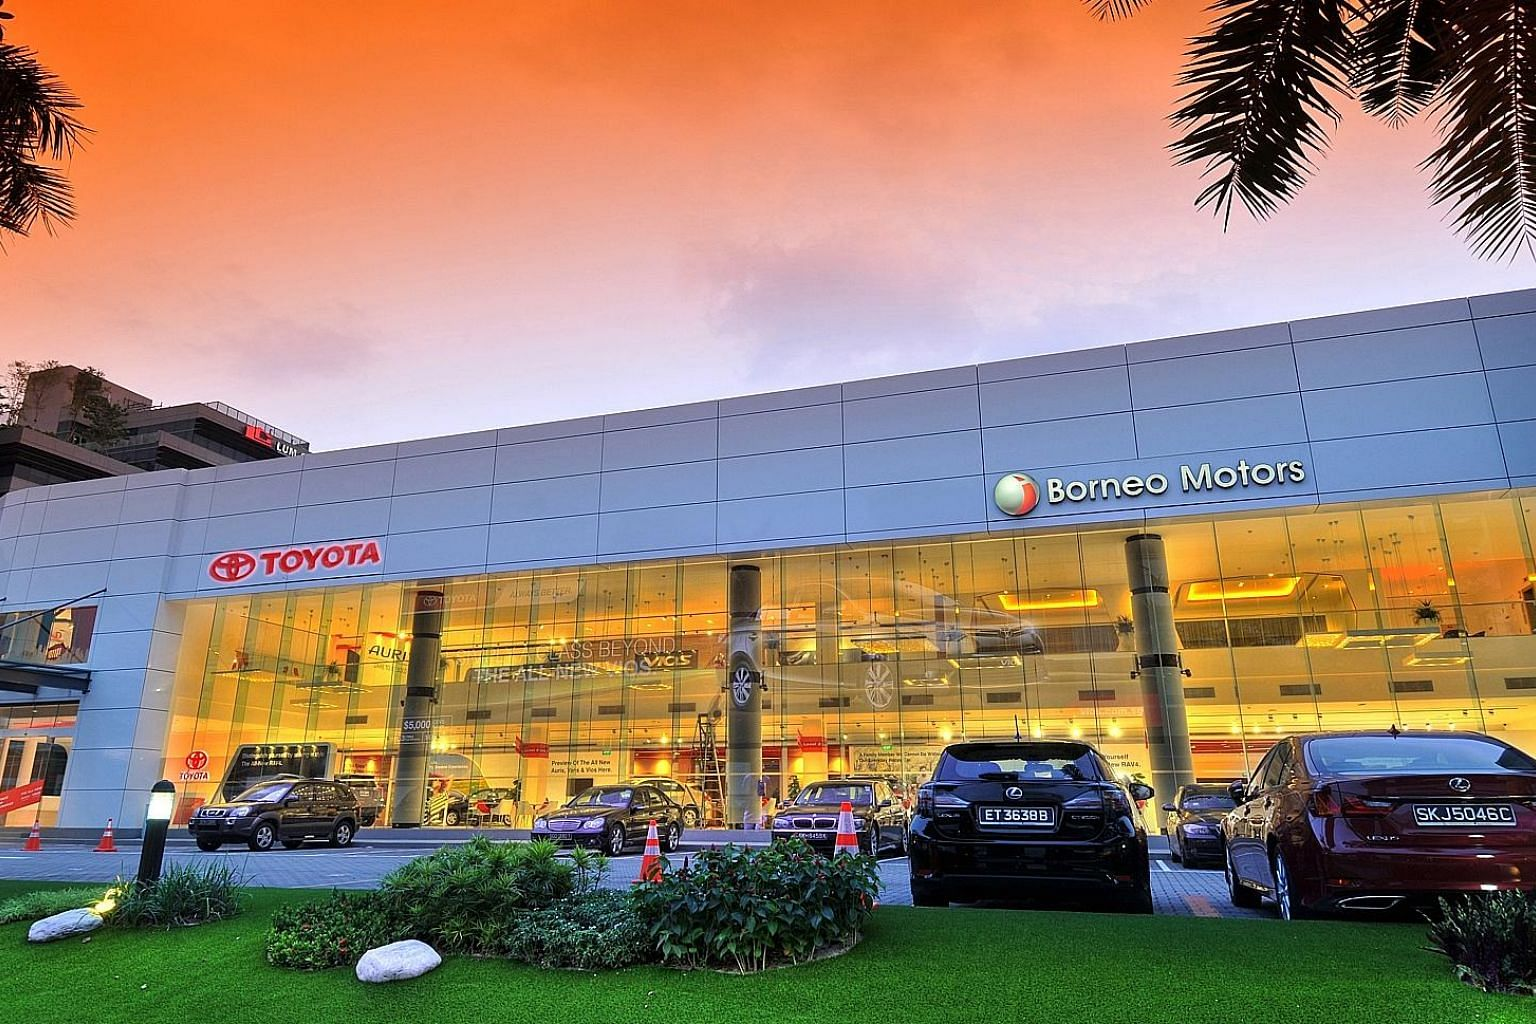 Toyota agent Borneo Motors has not had a sales commission cut before, according to two previous managing directors. It remains one of UK-listed Inchcape's top profit generators.